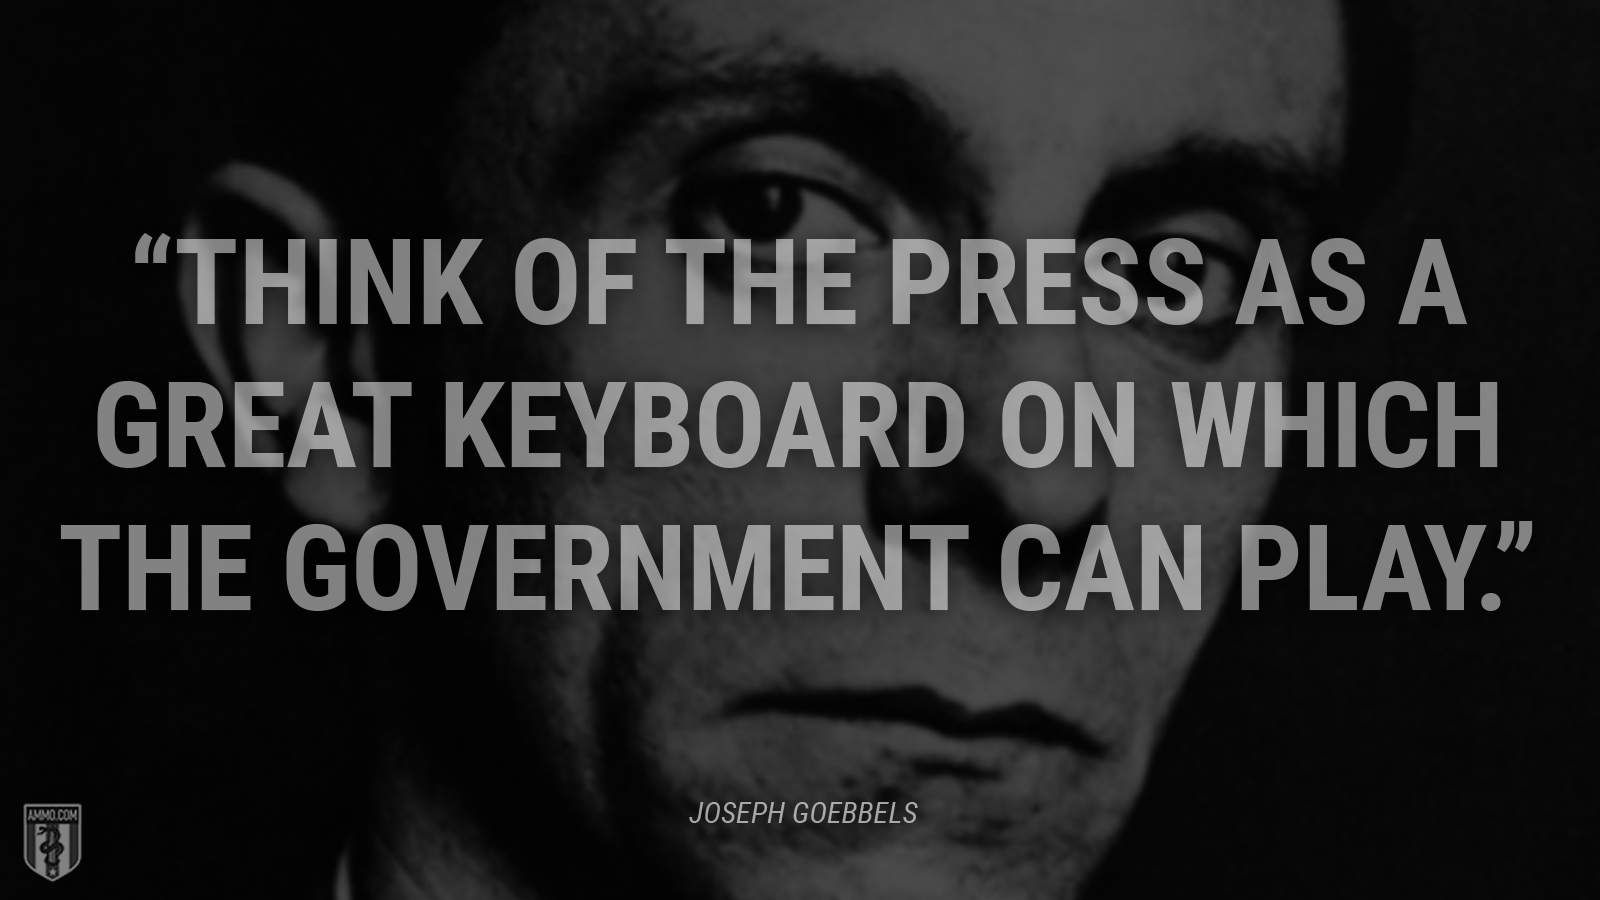 """Think of the press as a great keyboard on which the government can play."" - Joseph Goebbels"